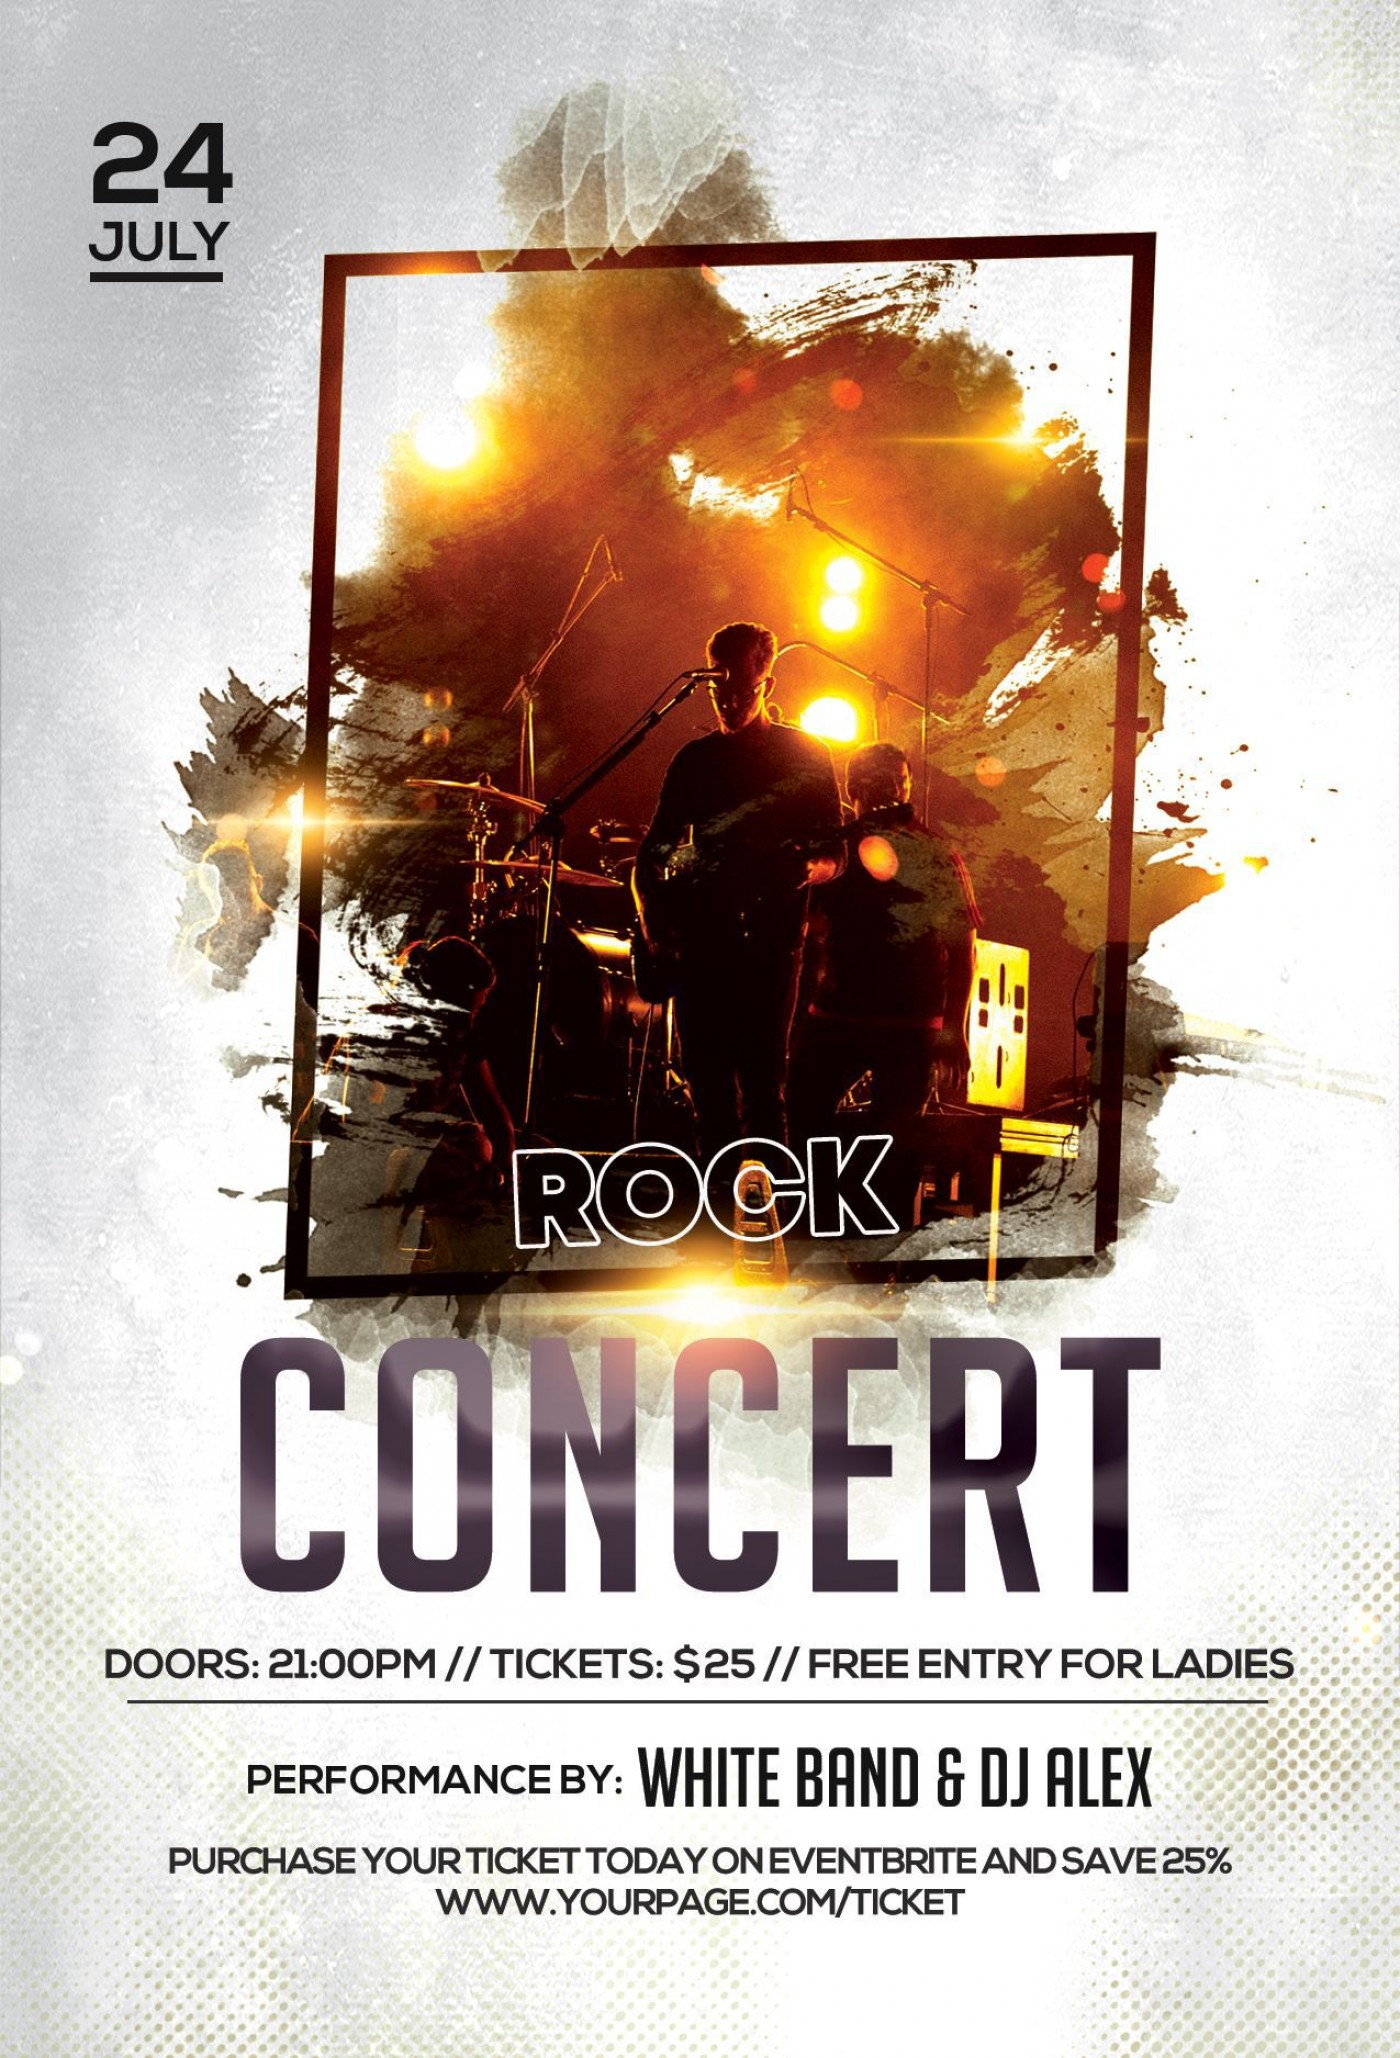 004 Amazing Free Concert Poster Template Highest Quality  Rock Psd Christma Photoshop1400